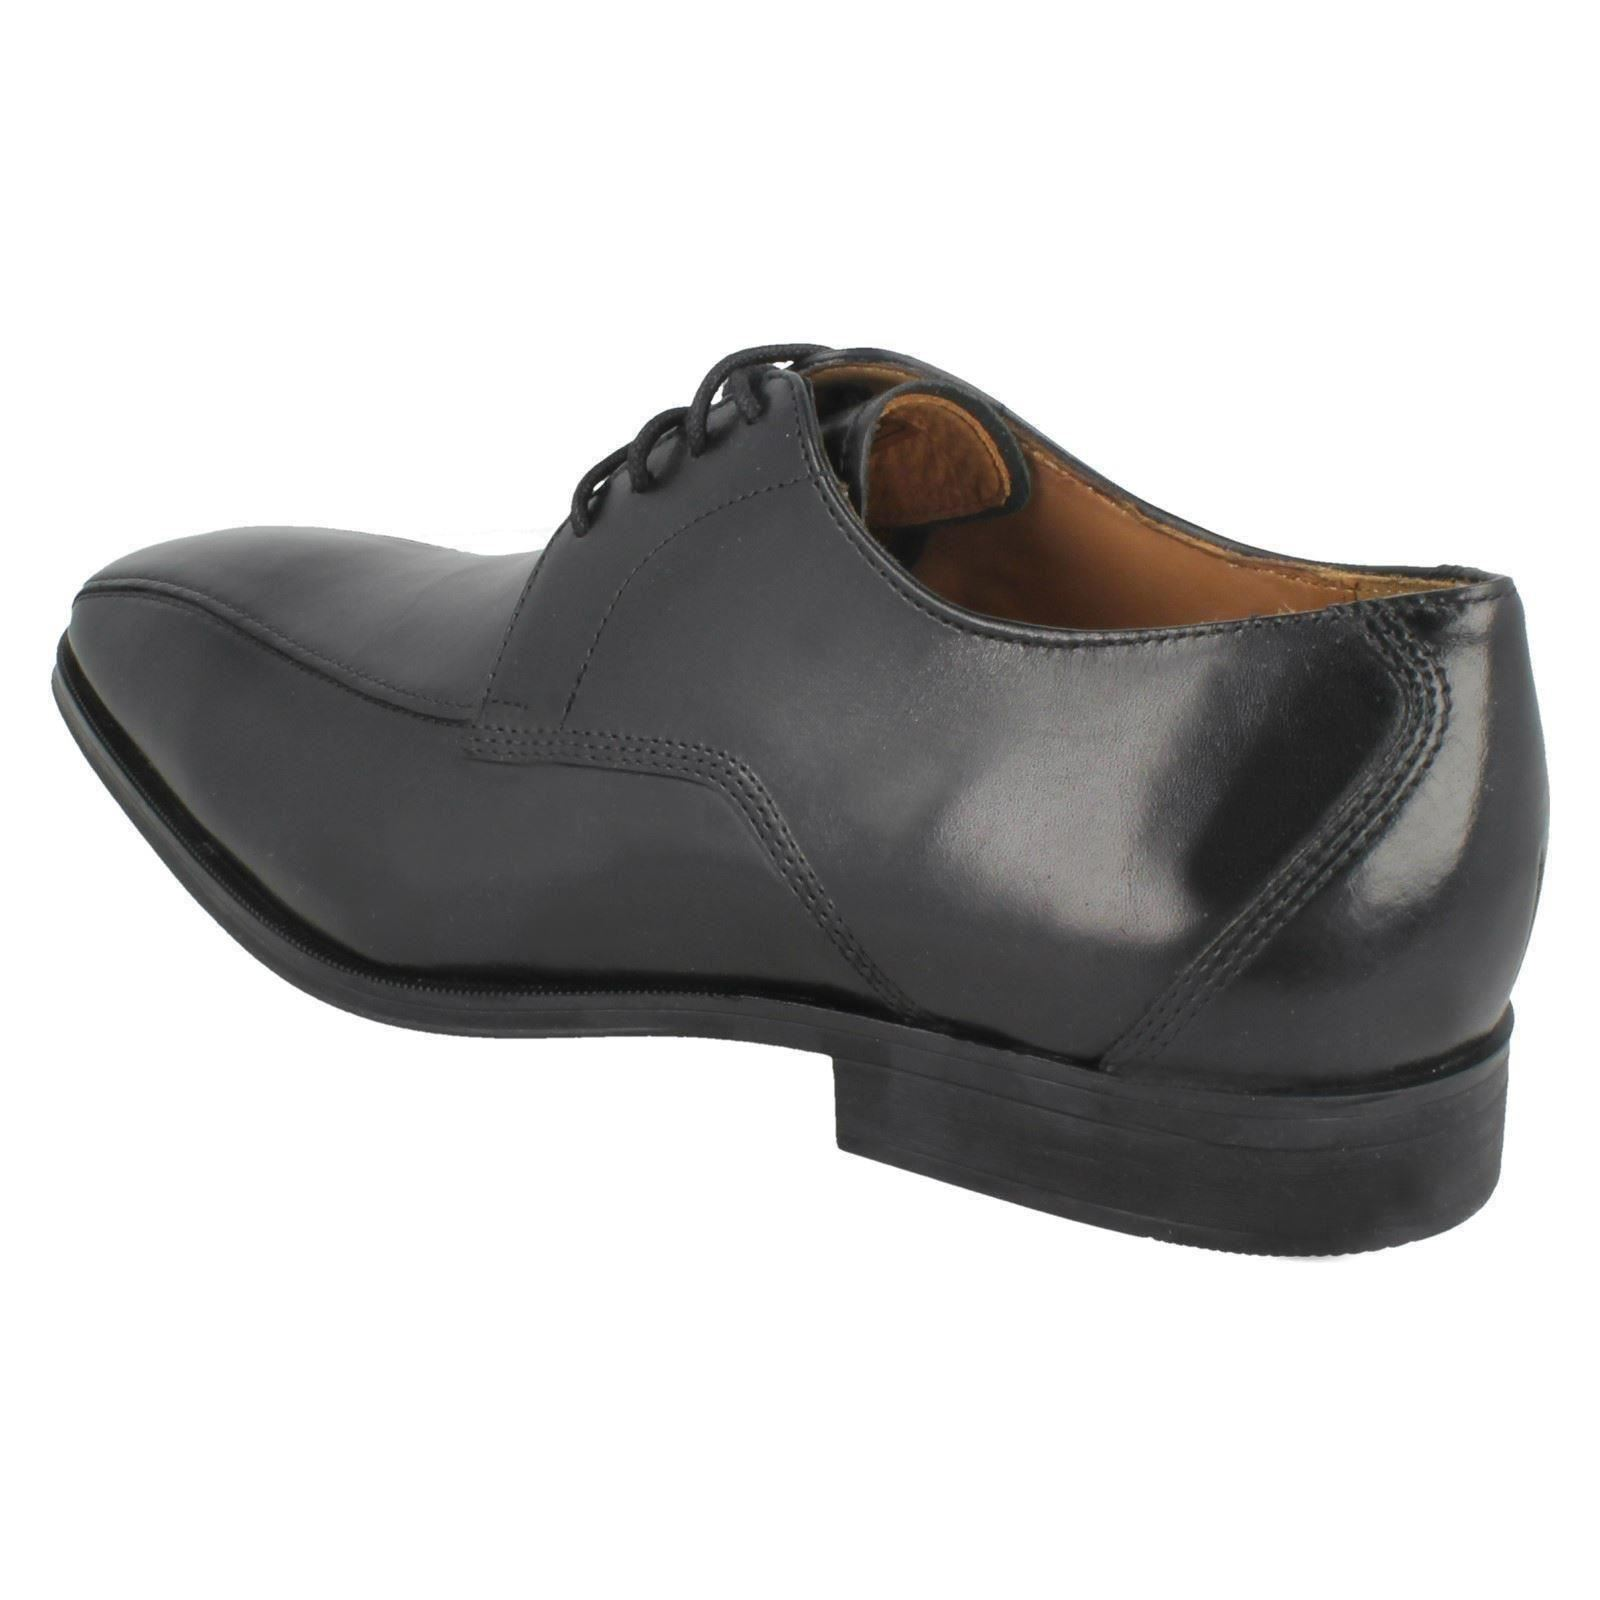 Hommes Clarks Mode ' Habillées' Gilman Chaussures wfUqTwv